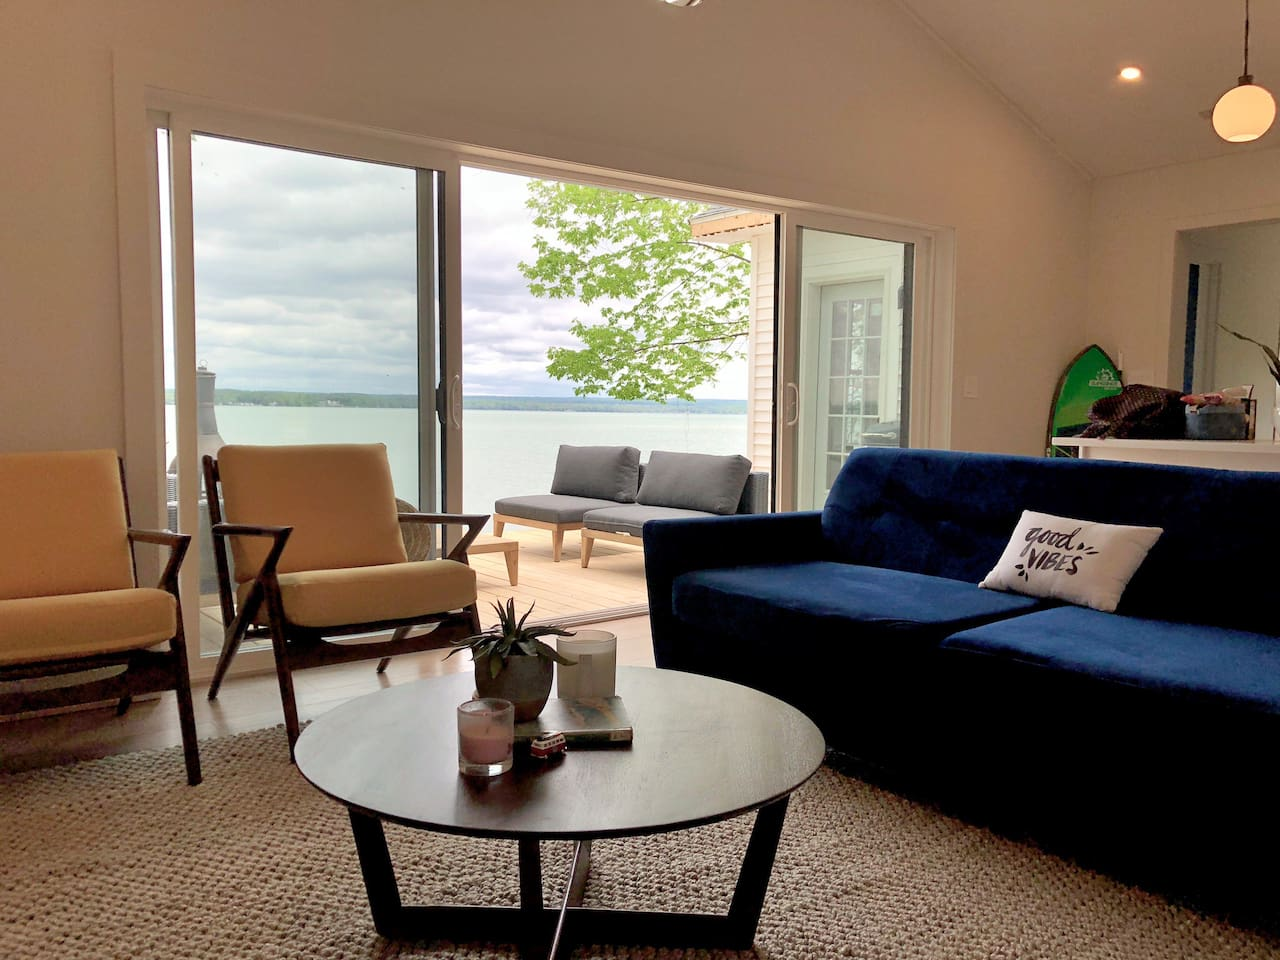 Our living room features a 14 foot sliding door to a 24x14 ft deck.